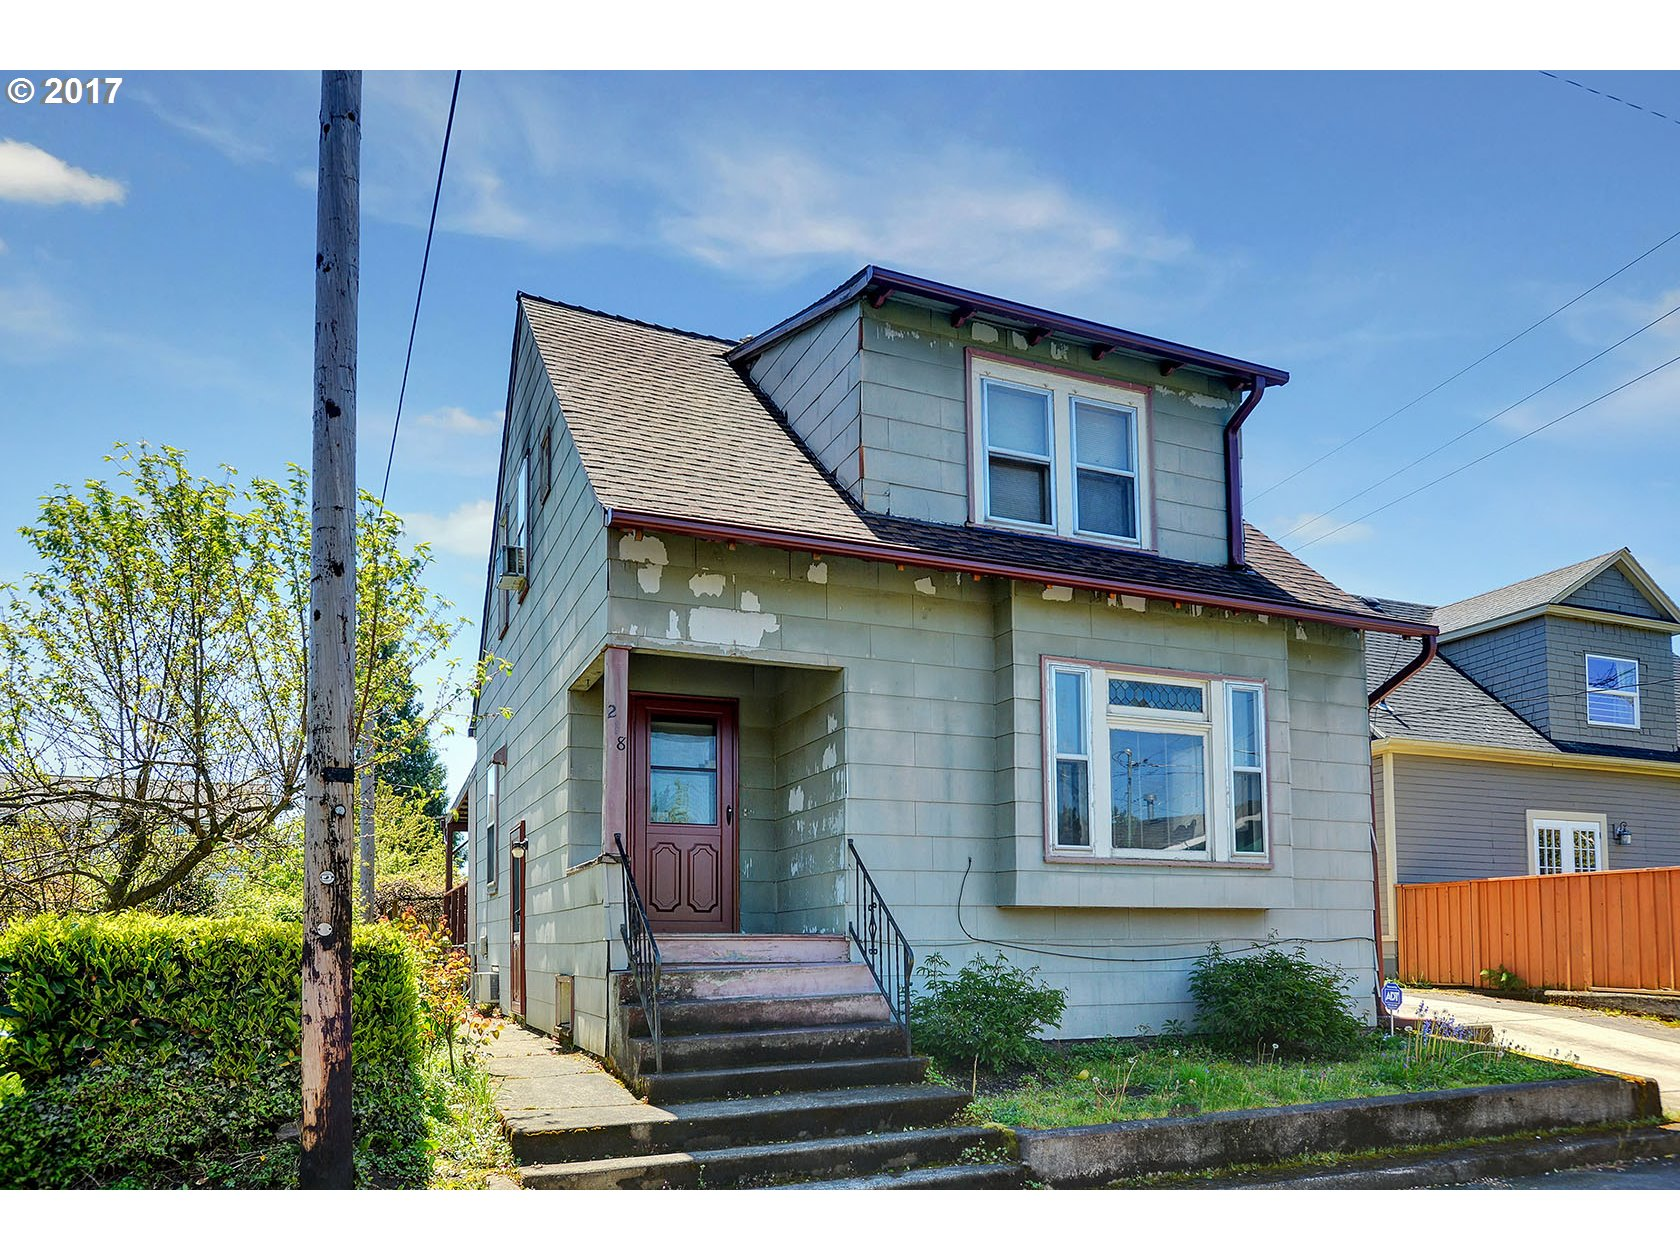 218 n going st portland or 97217 mls 17259854 pdx listed